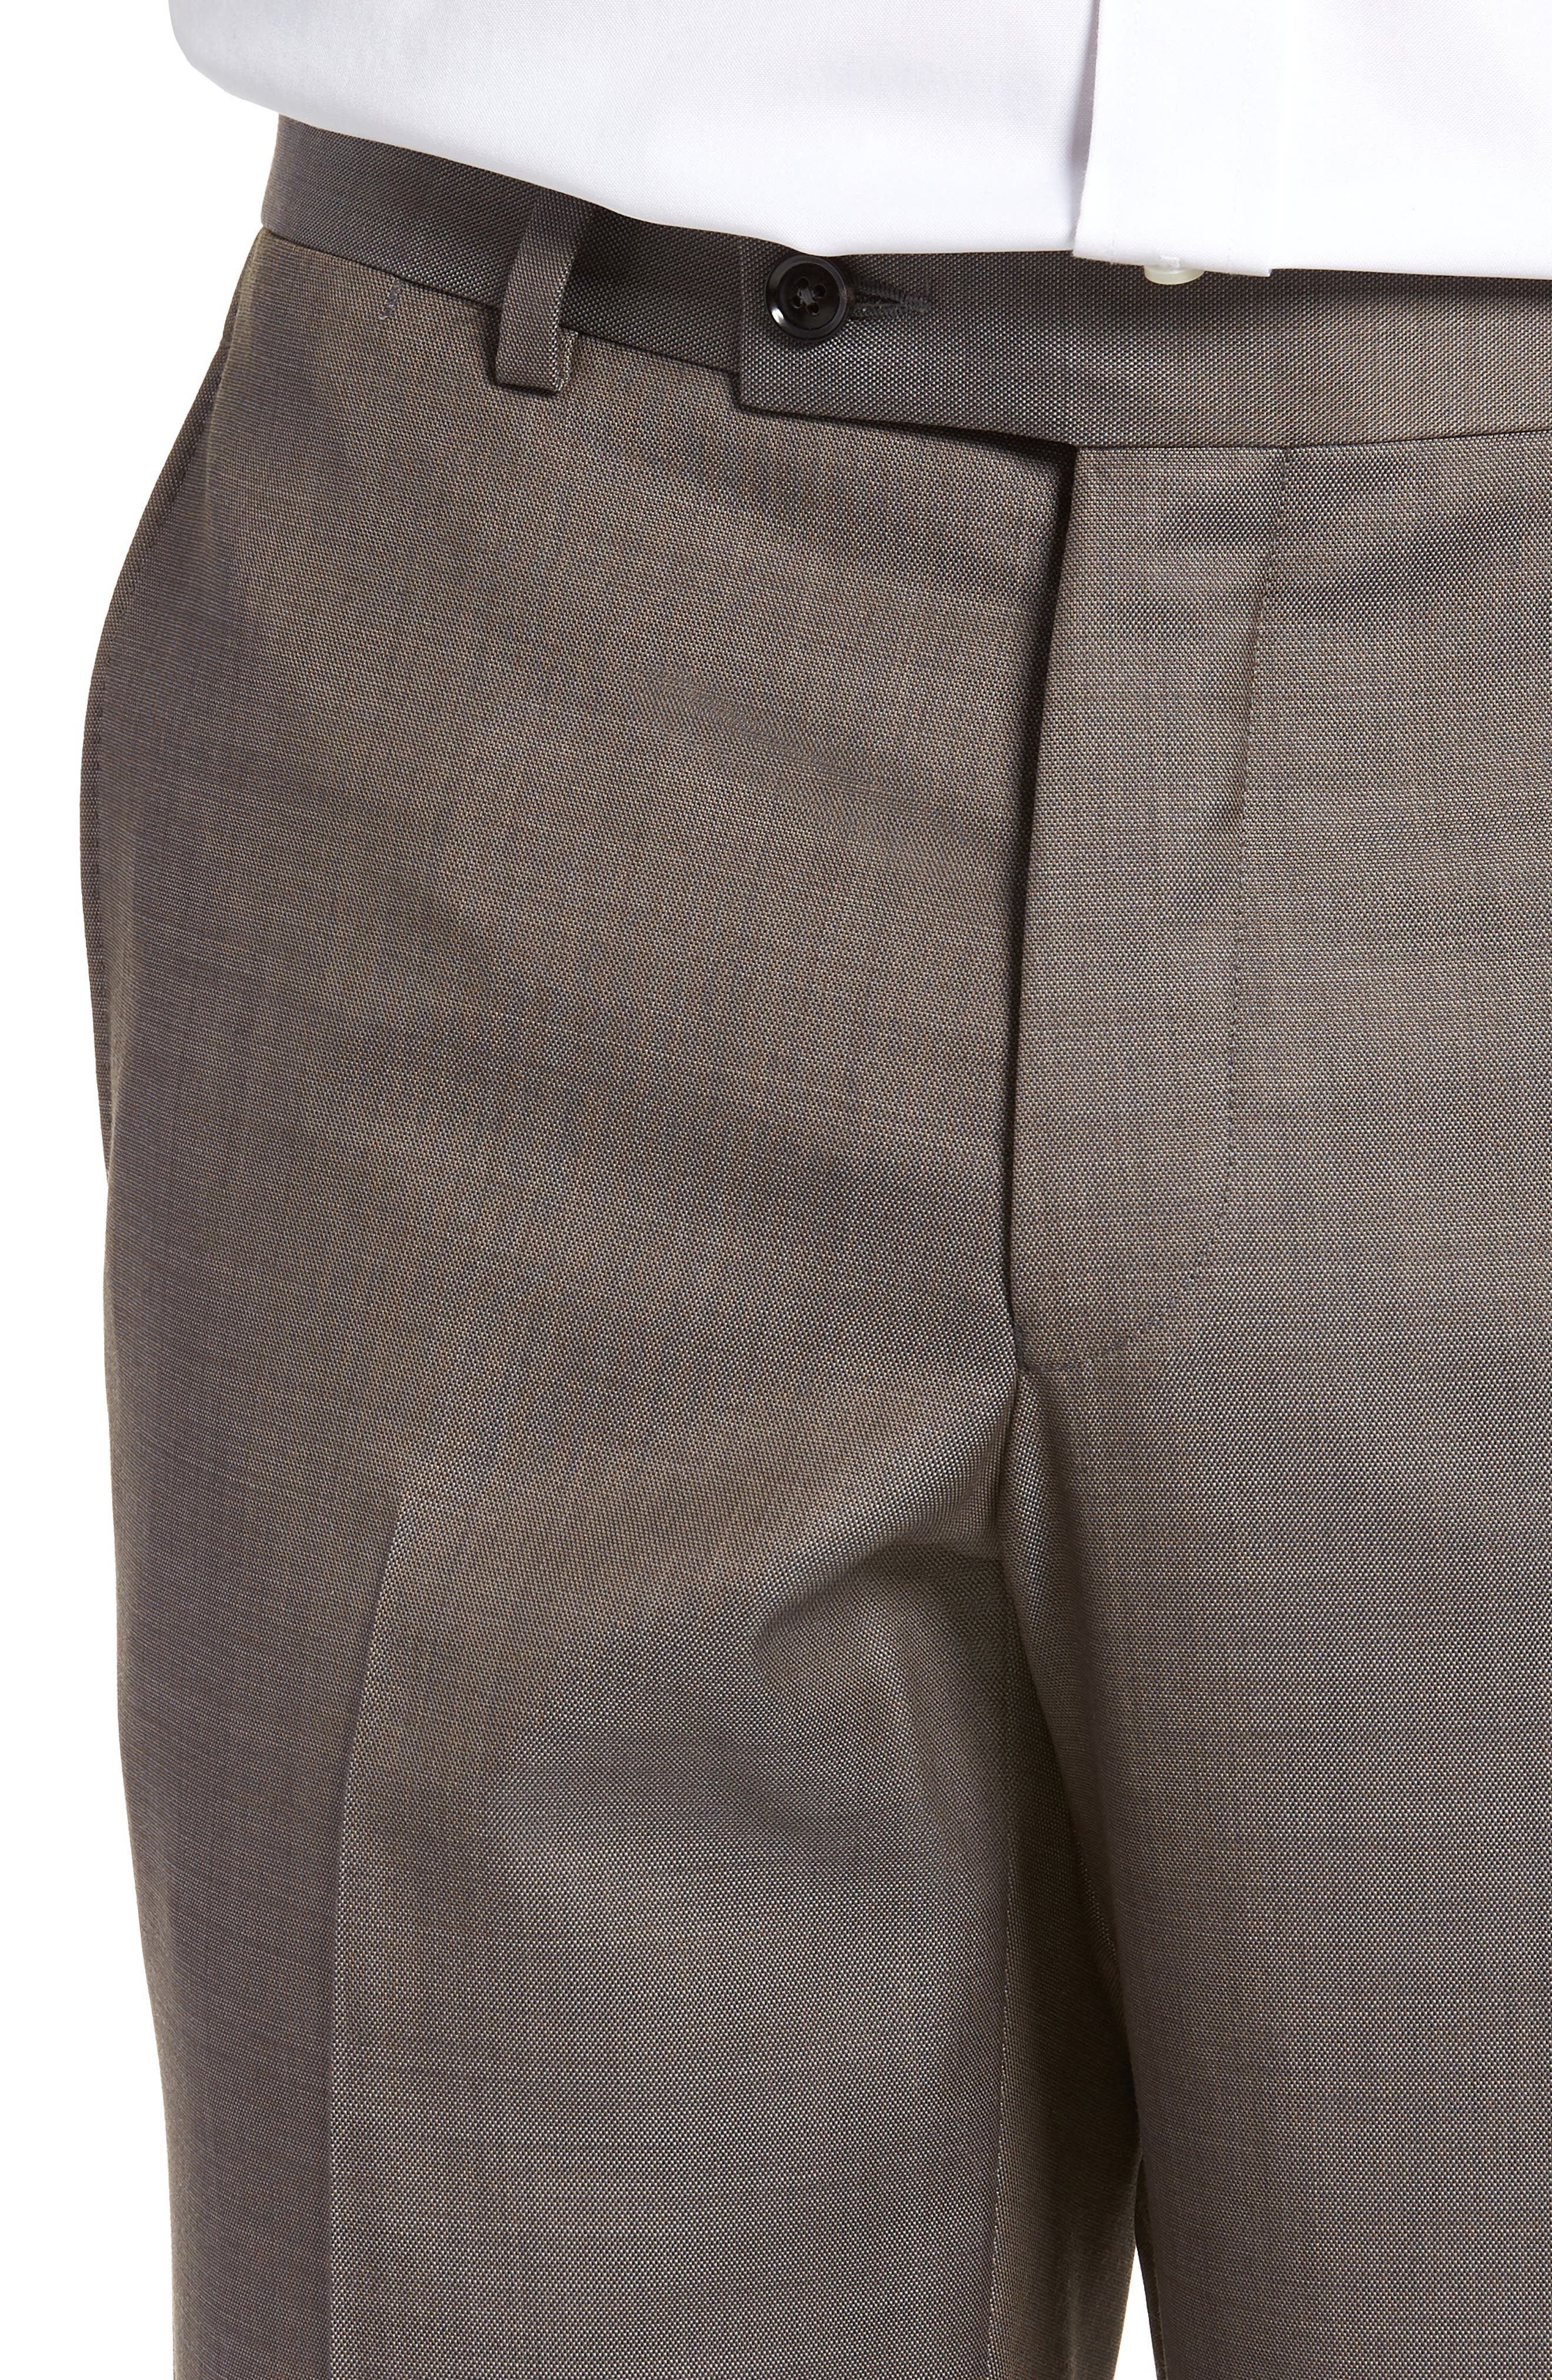 TED BAKER LONDON, Jefferson Flat Front Wool Trousers, Alternate thumbnail 4, color, MID GREY